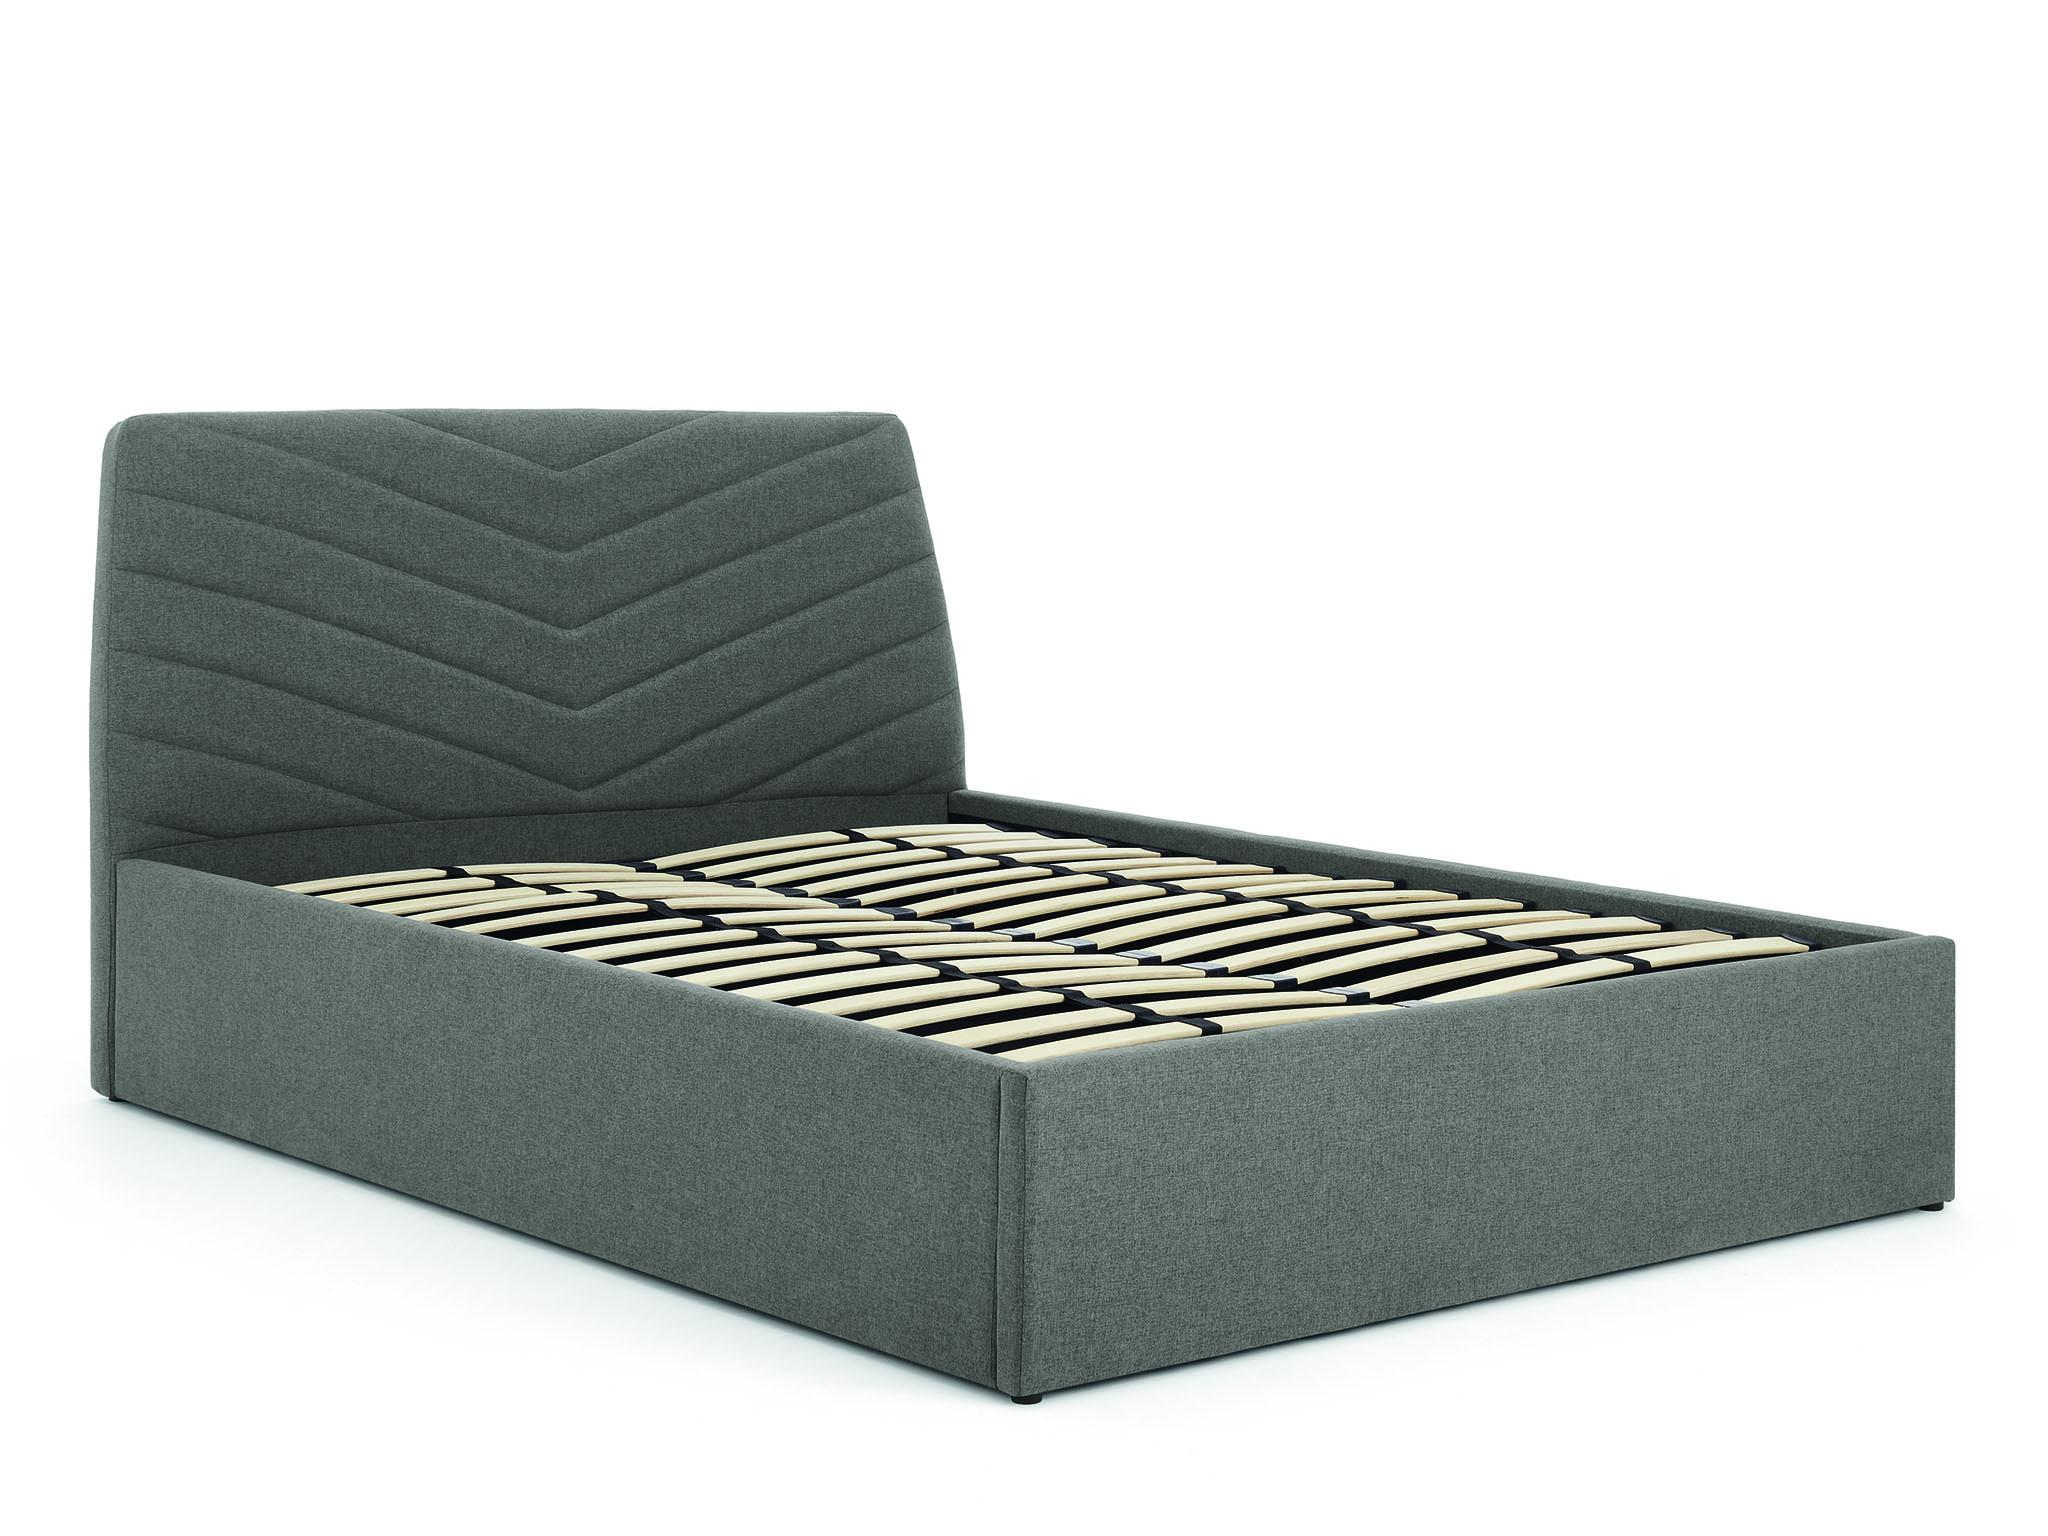 The Lex storage bed is ideal for smaller spaces. The slats lift from the  end c53affd2eb